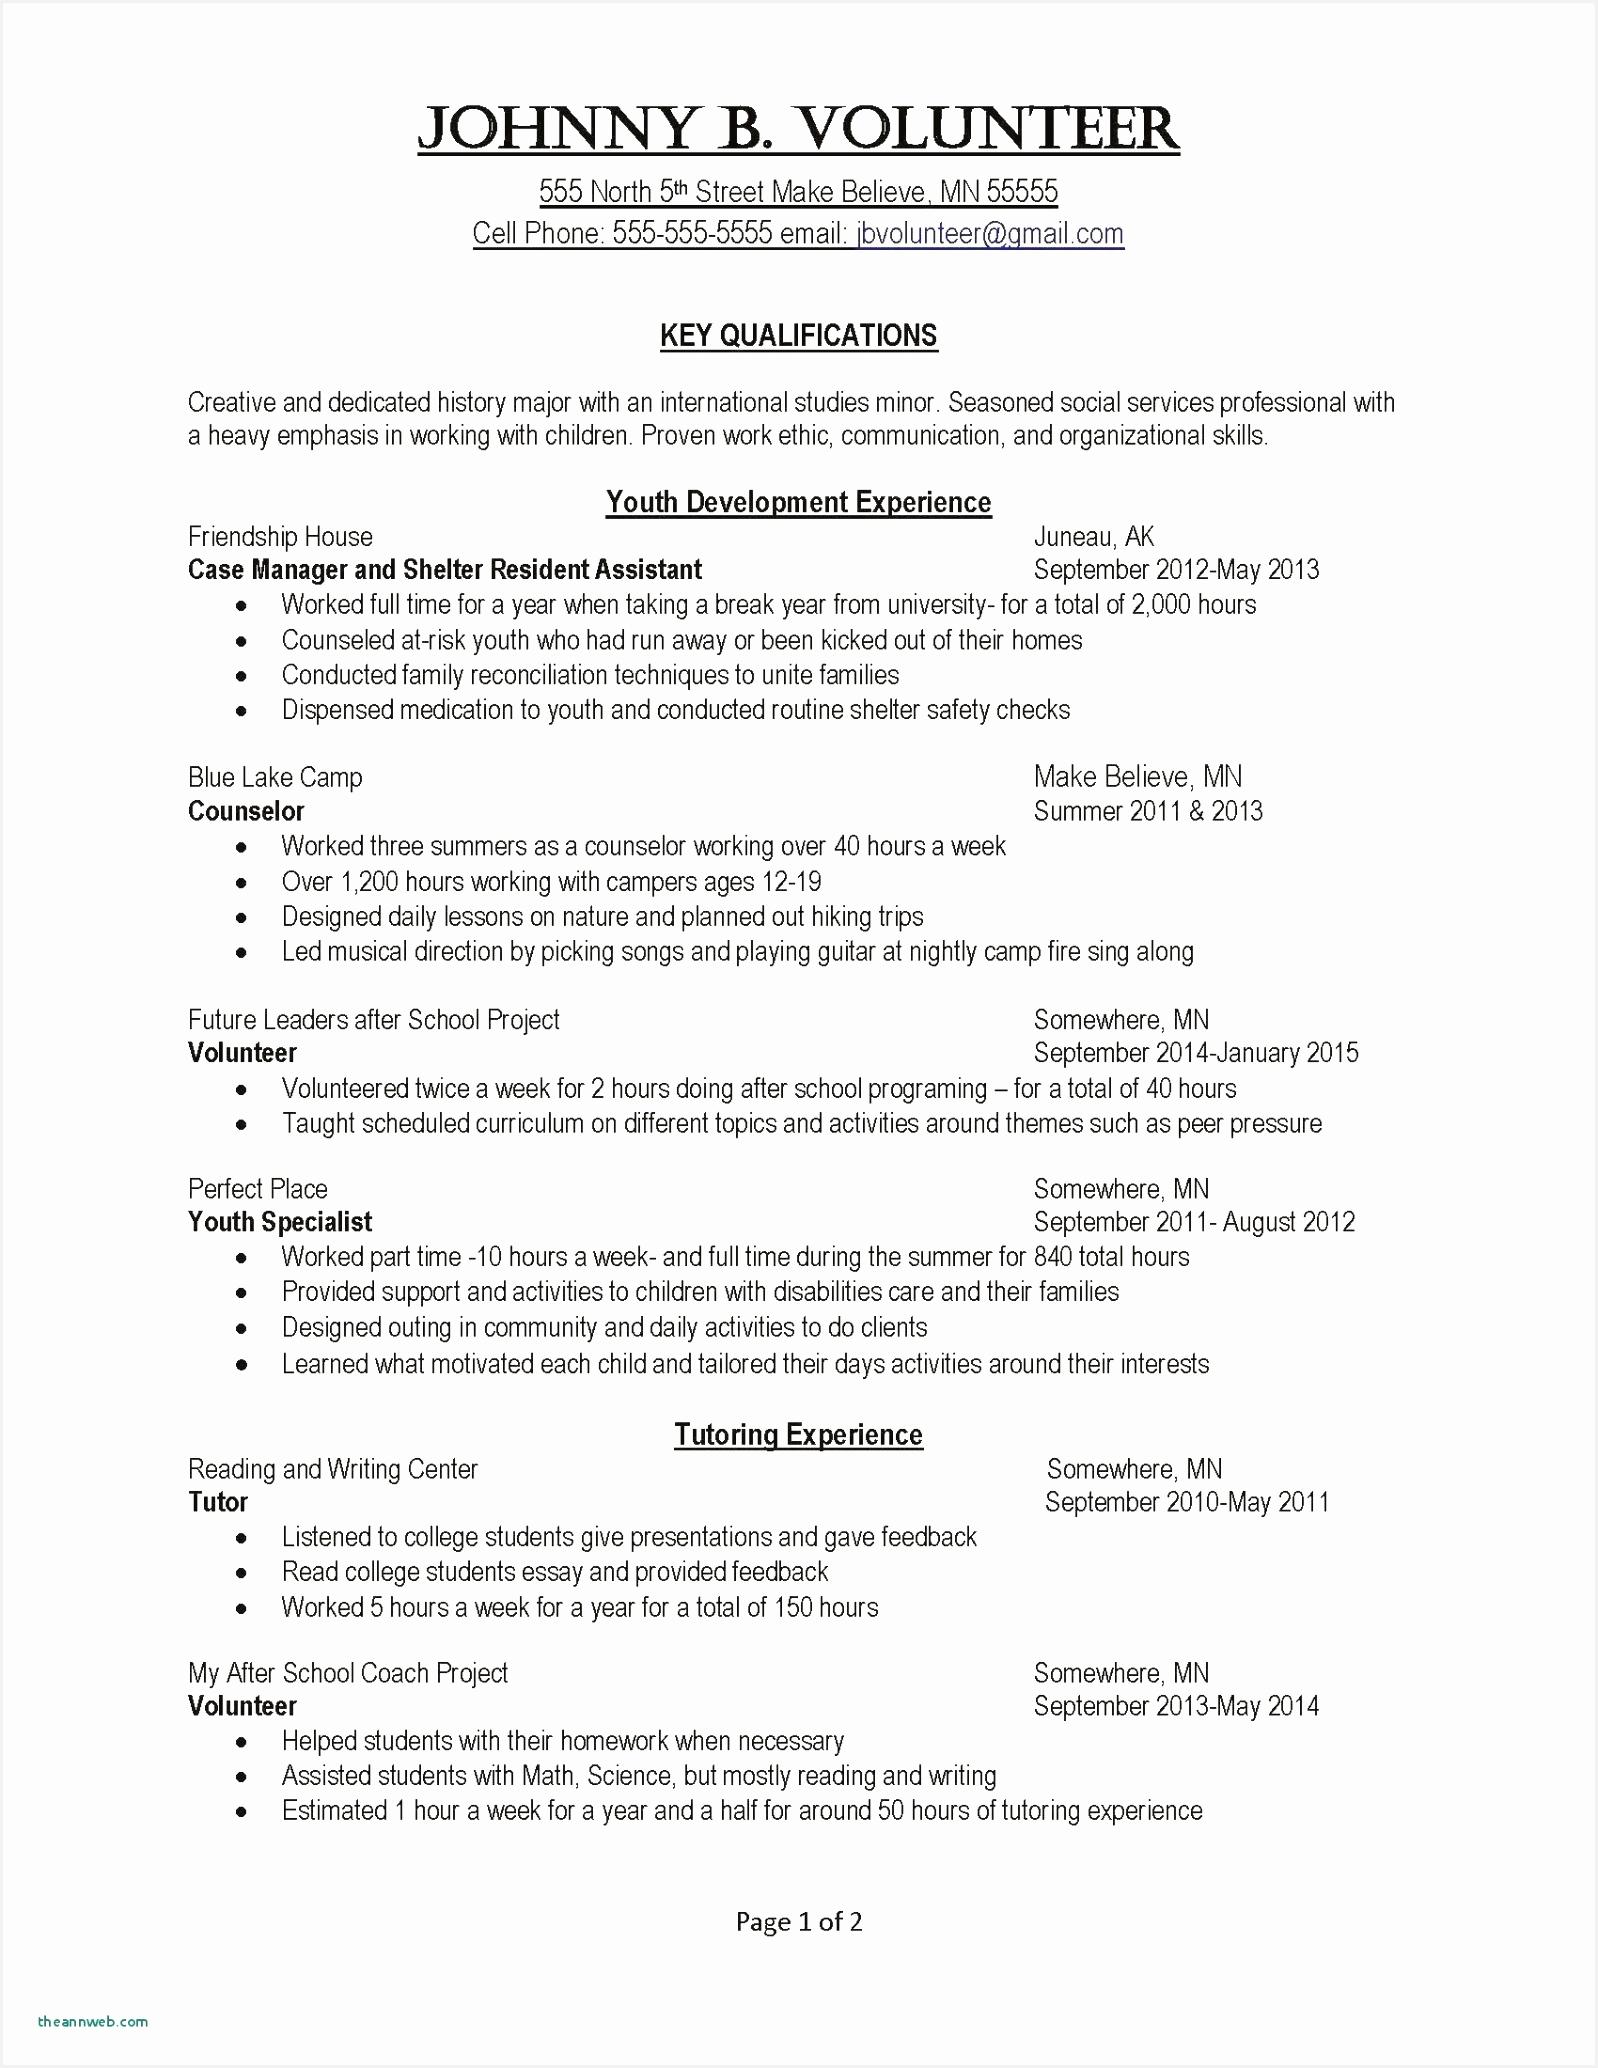 Pc Specialist Sample Resume Ntknt New Correct Resume format Examples – Salumguilher20681598